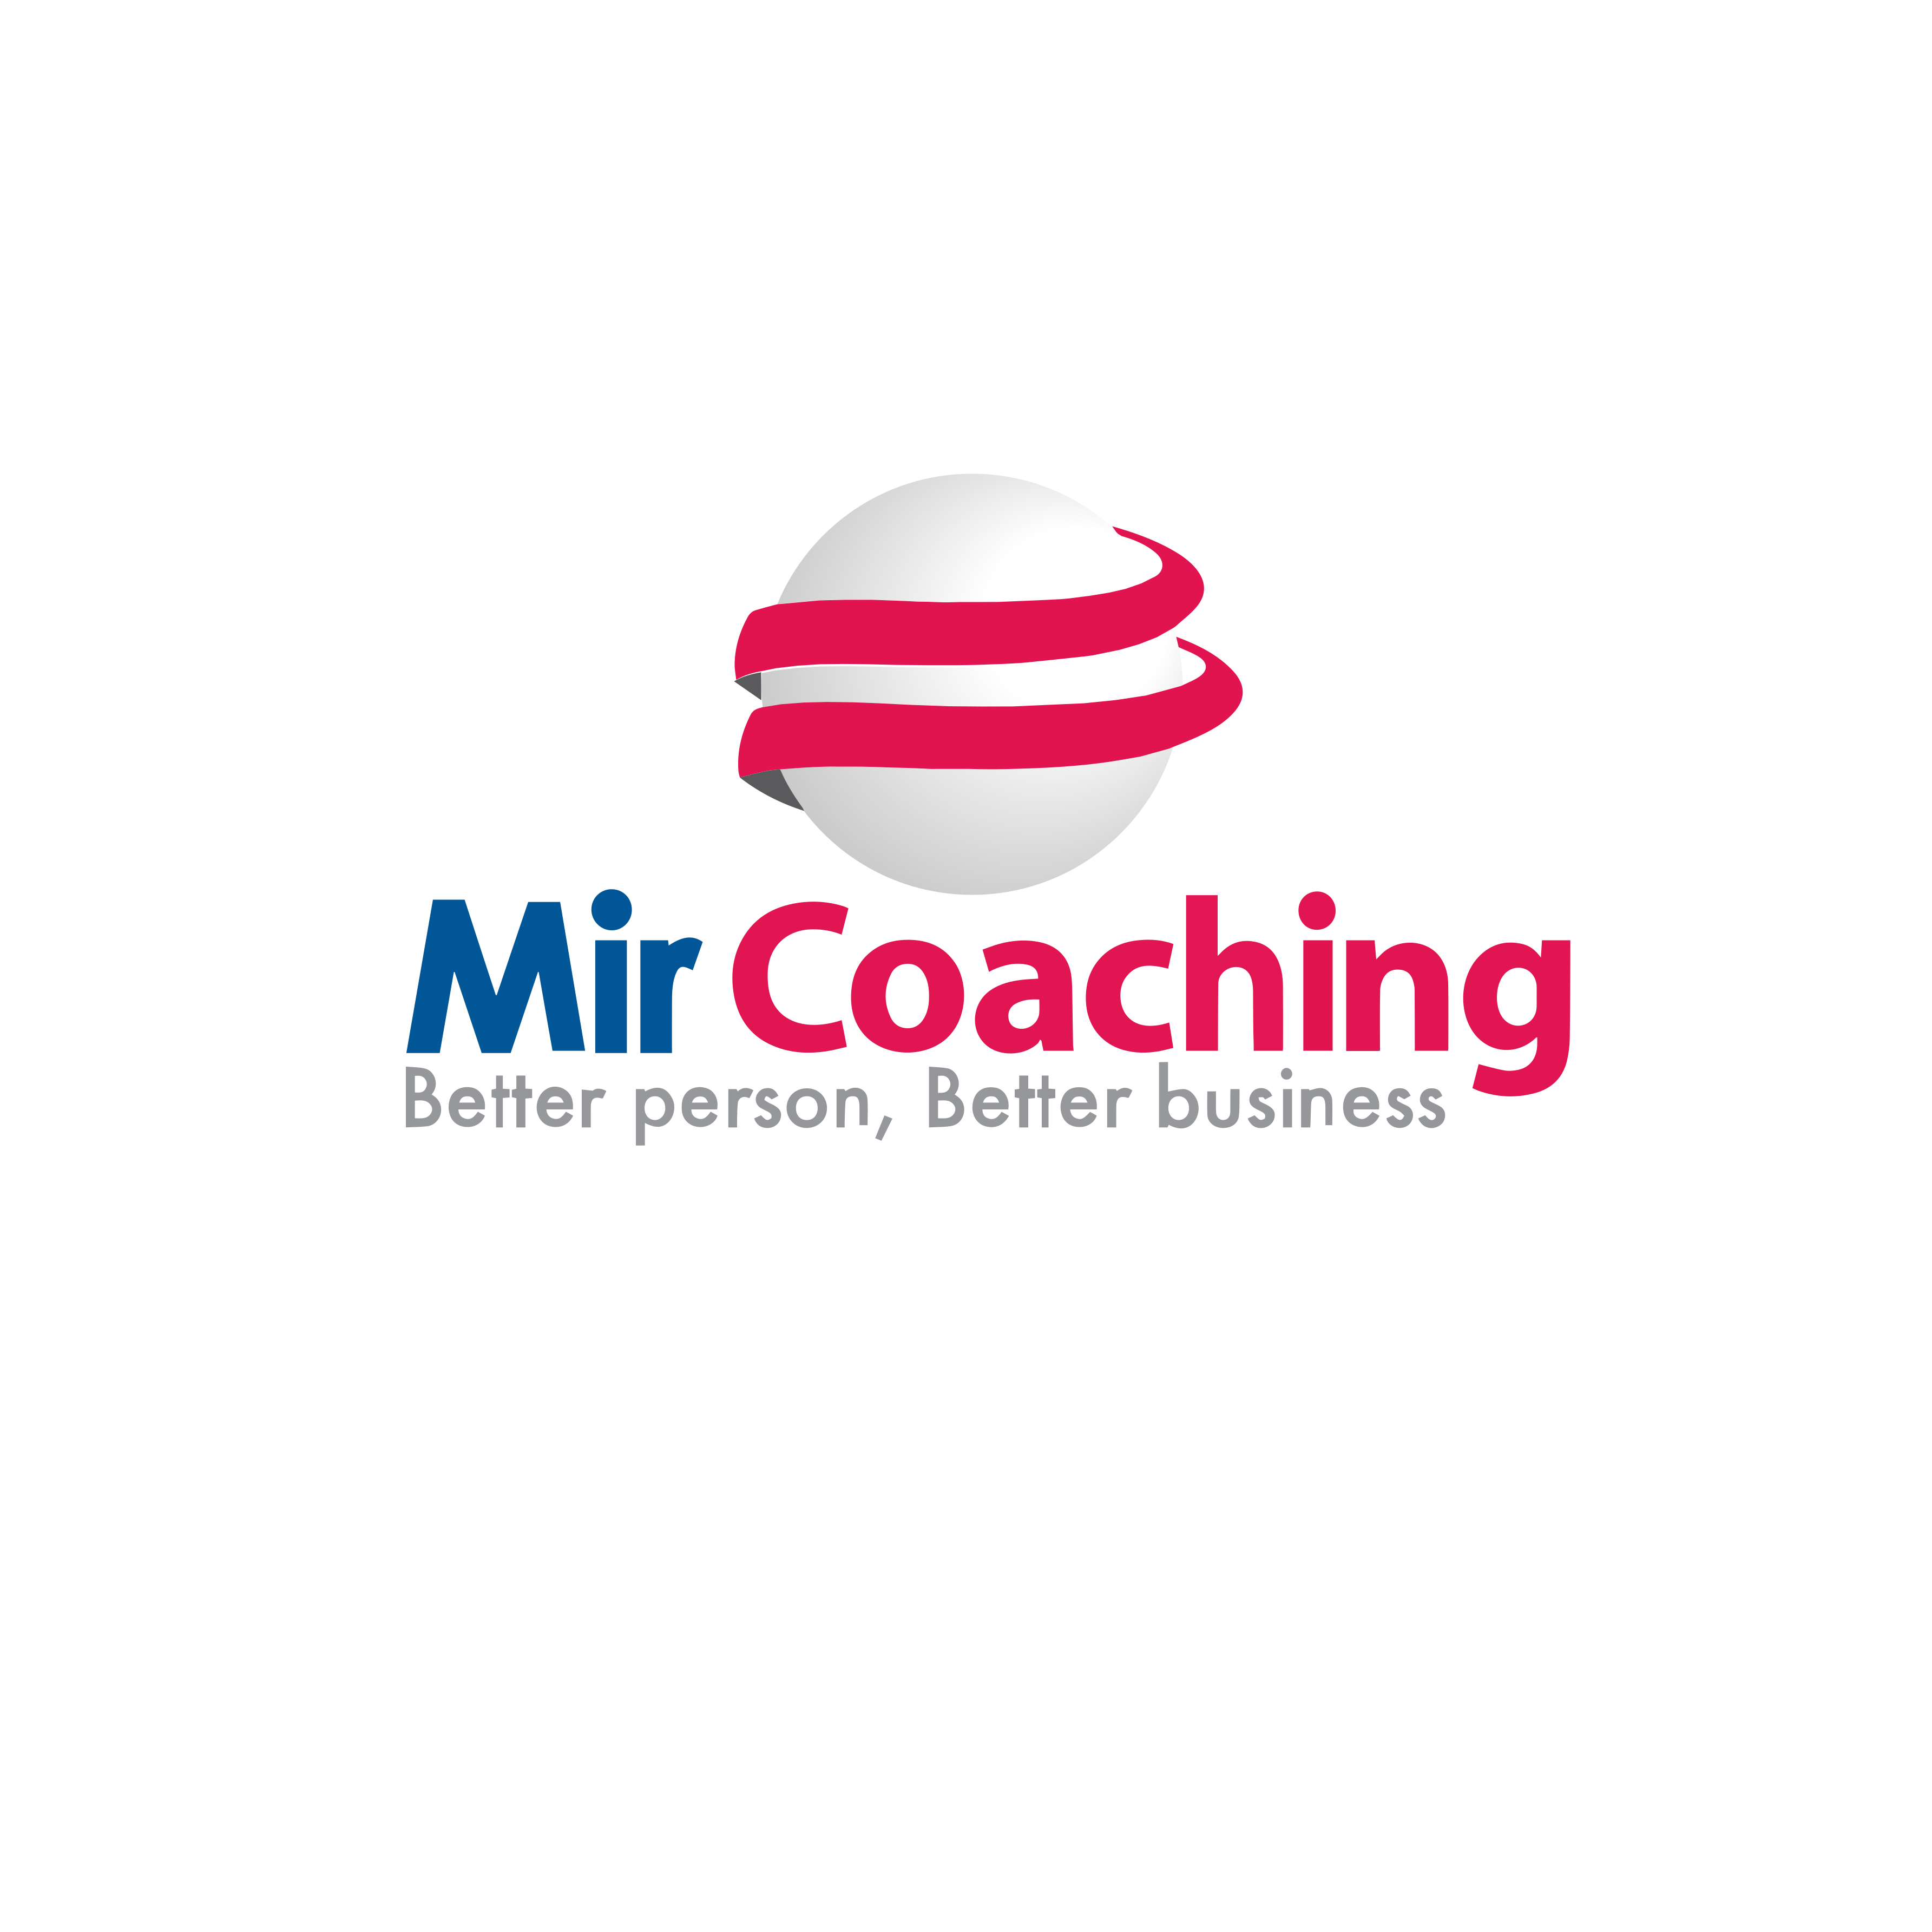 Mir Coaching